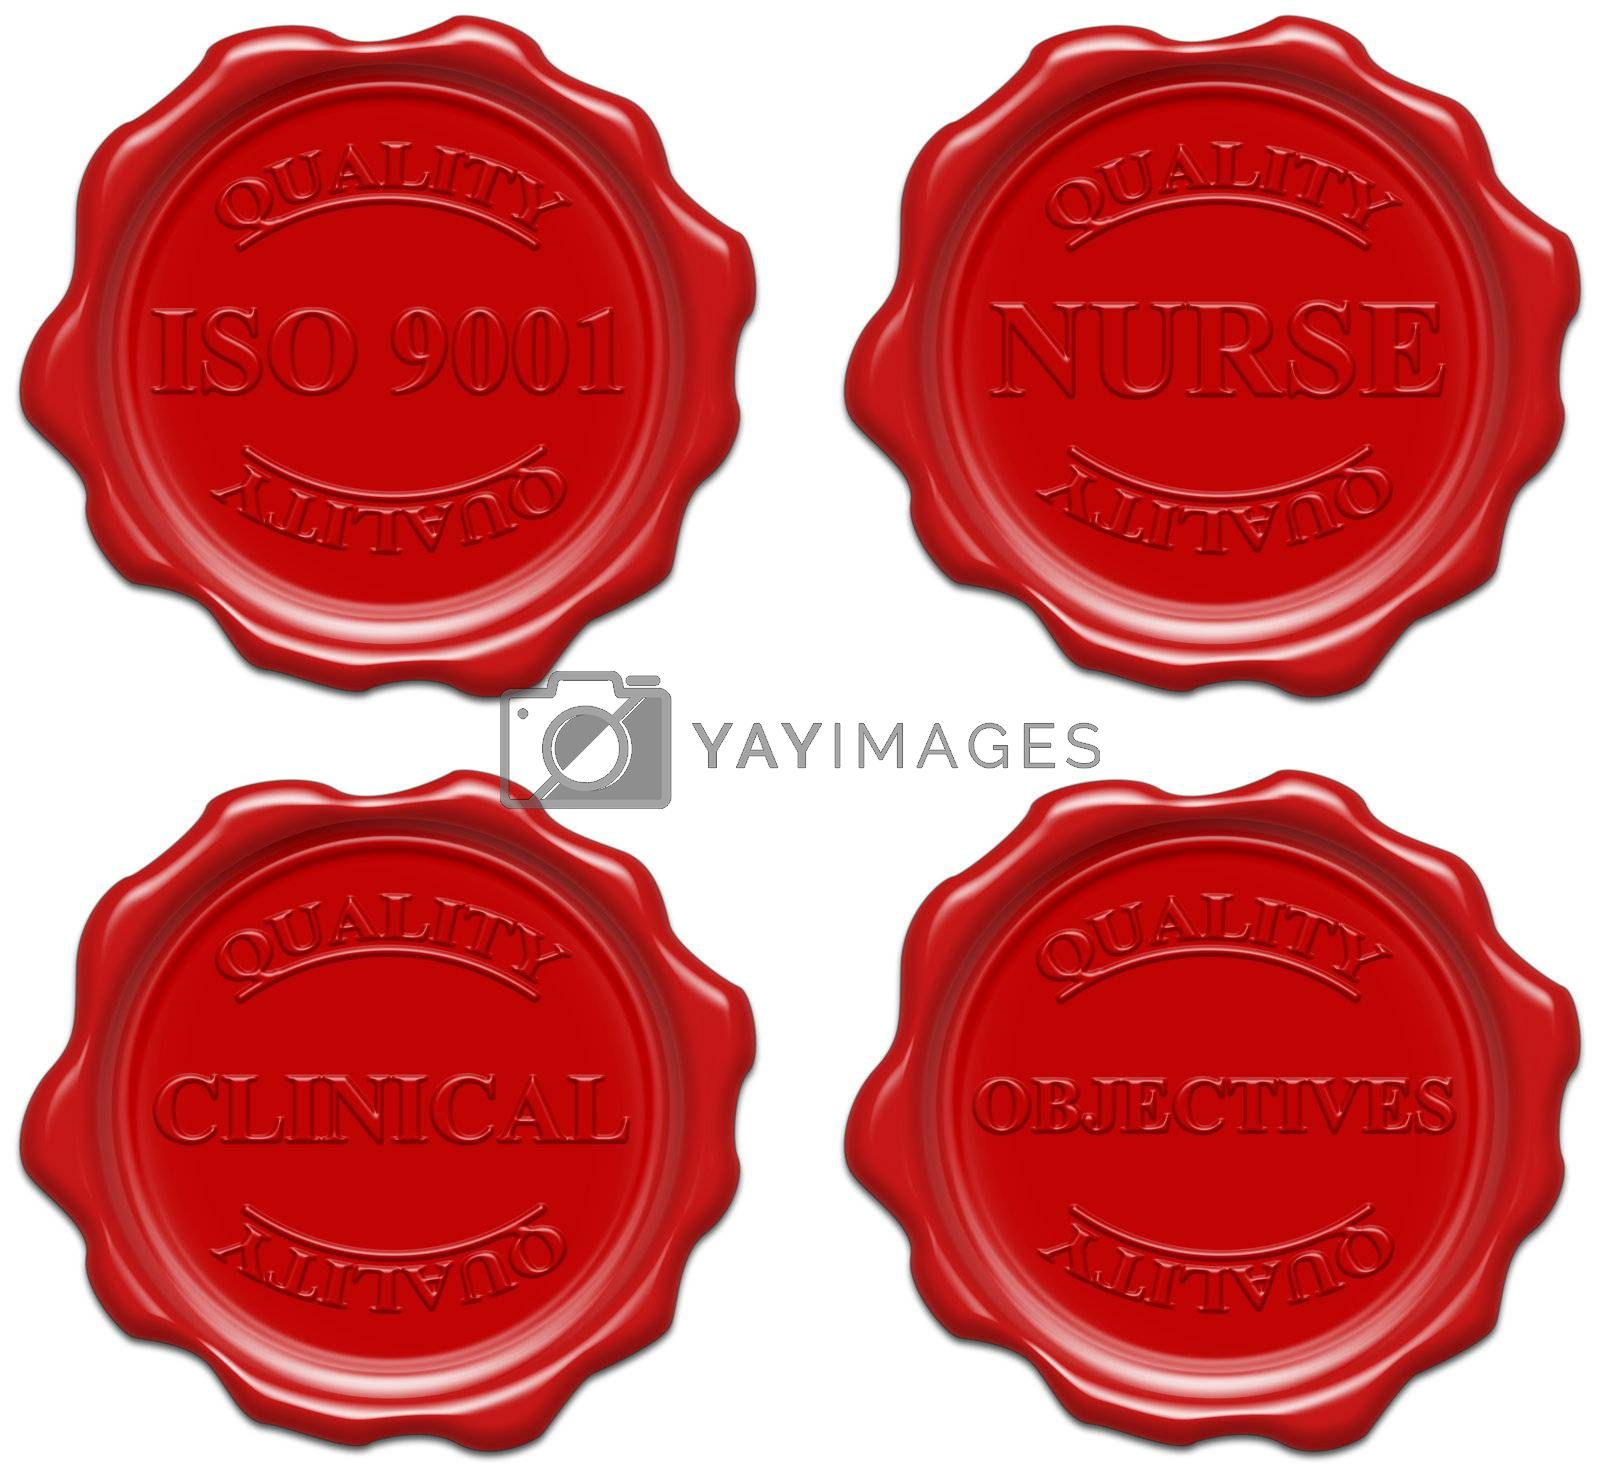 High resolution realistic red wax seal with text : quality, iso 9001, nurse, clinical, objectives